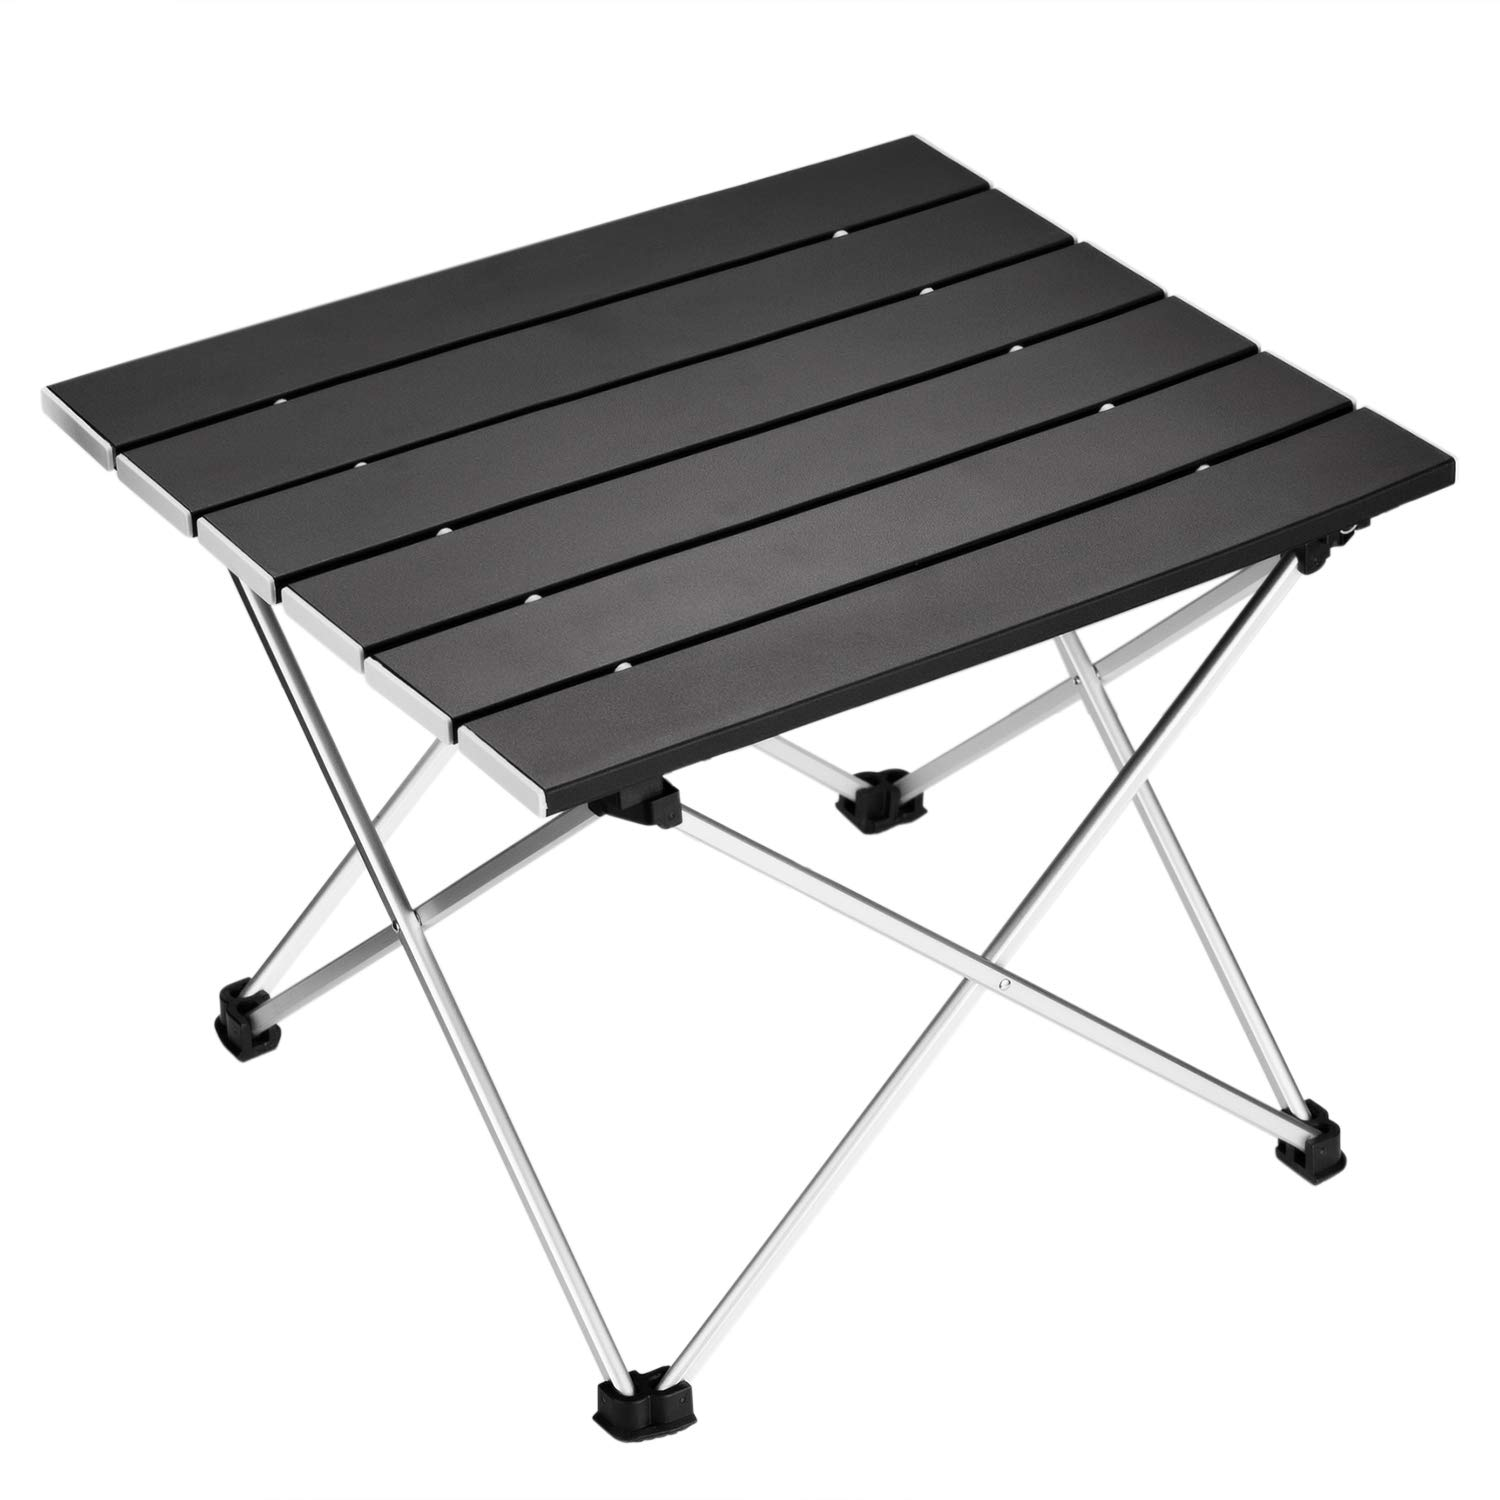 Black OMUKY Mini Camping Folding Table Aluminum Alloy Roll Up Picnic Table Small Portable Picnic Tables for Outdoor,Picnic,Travel,Beach